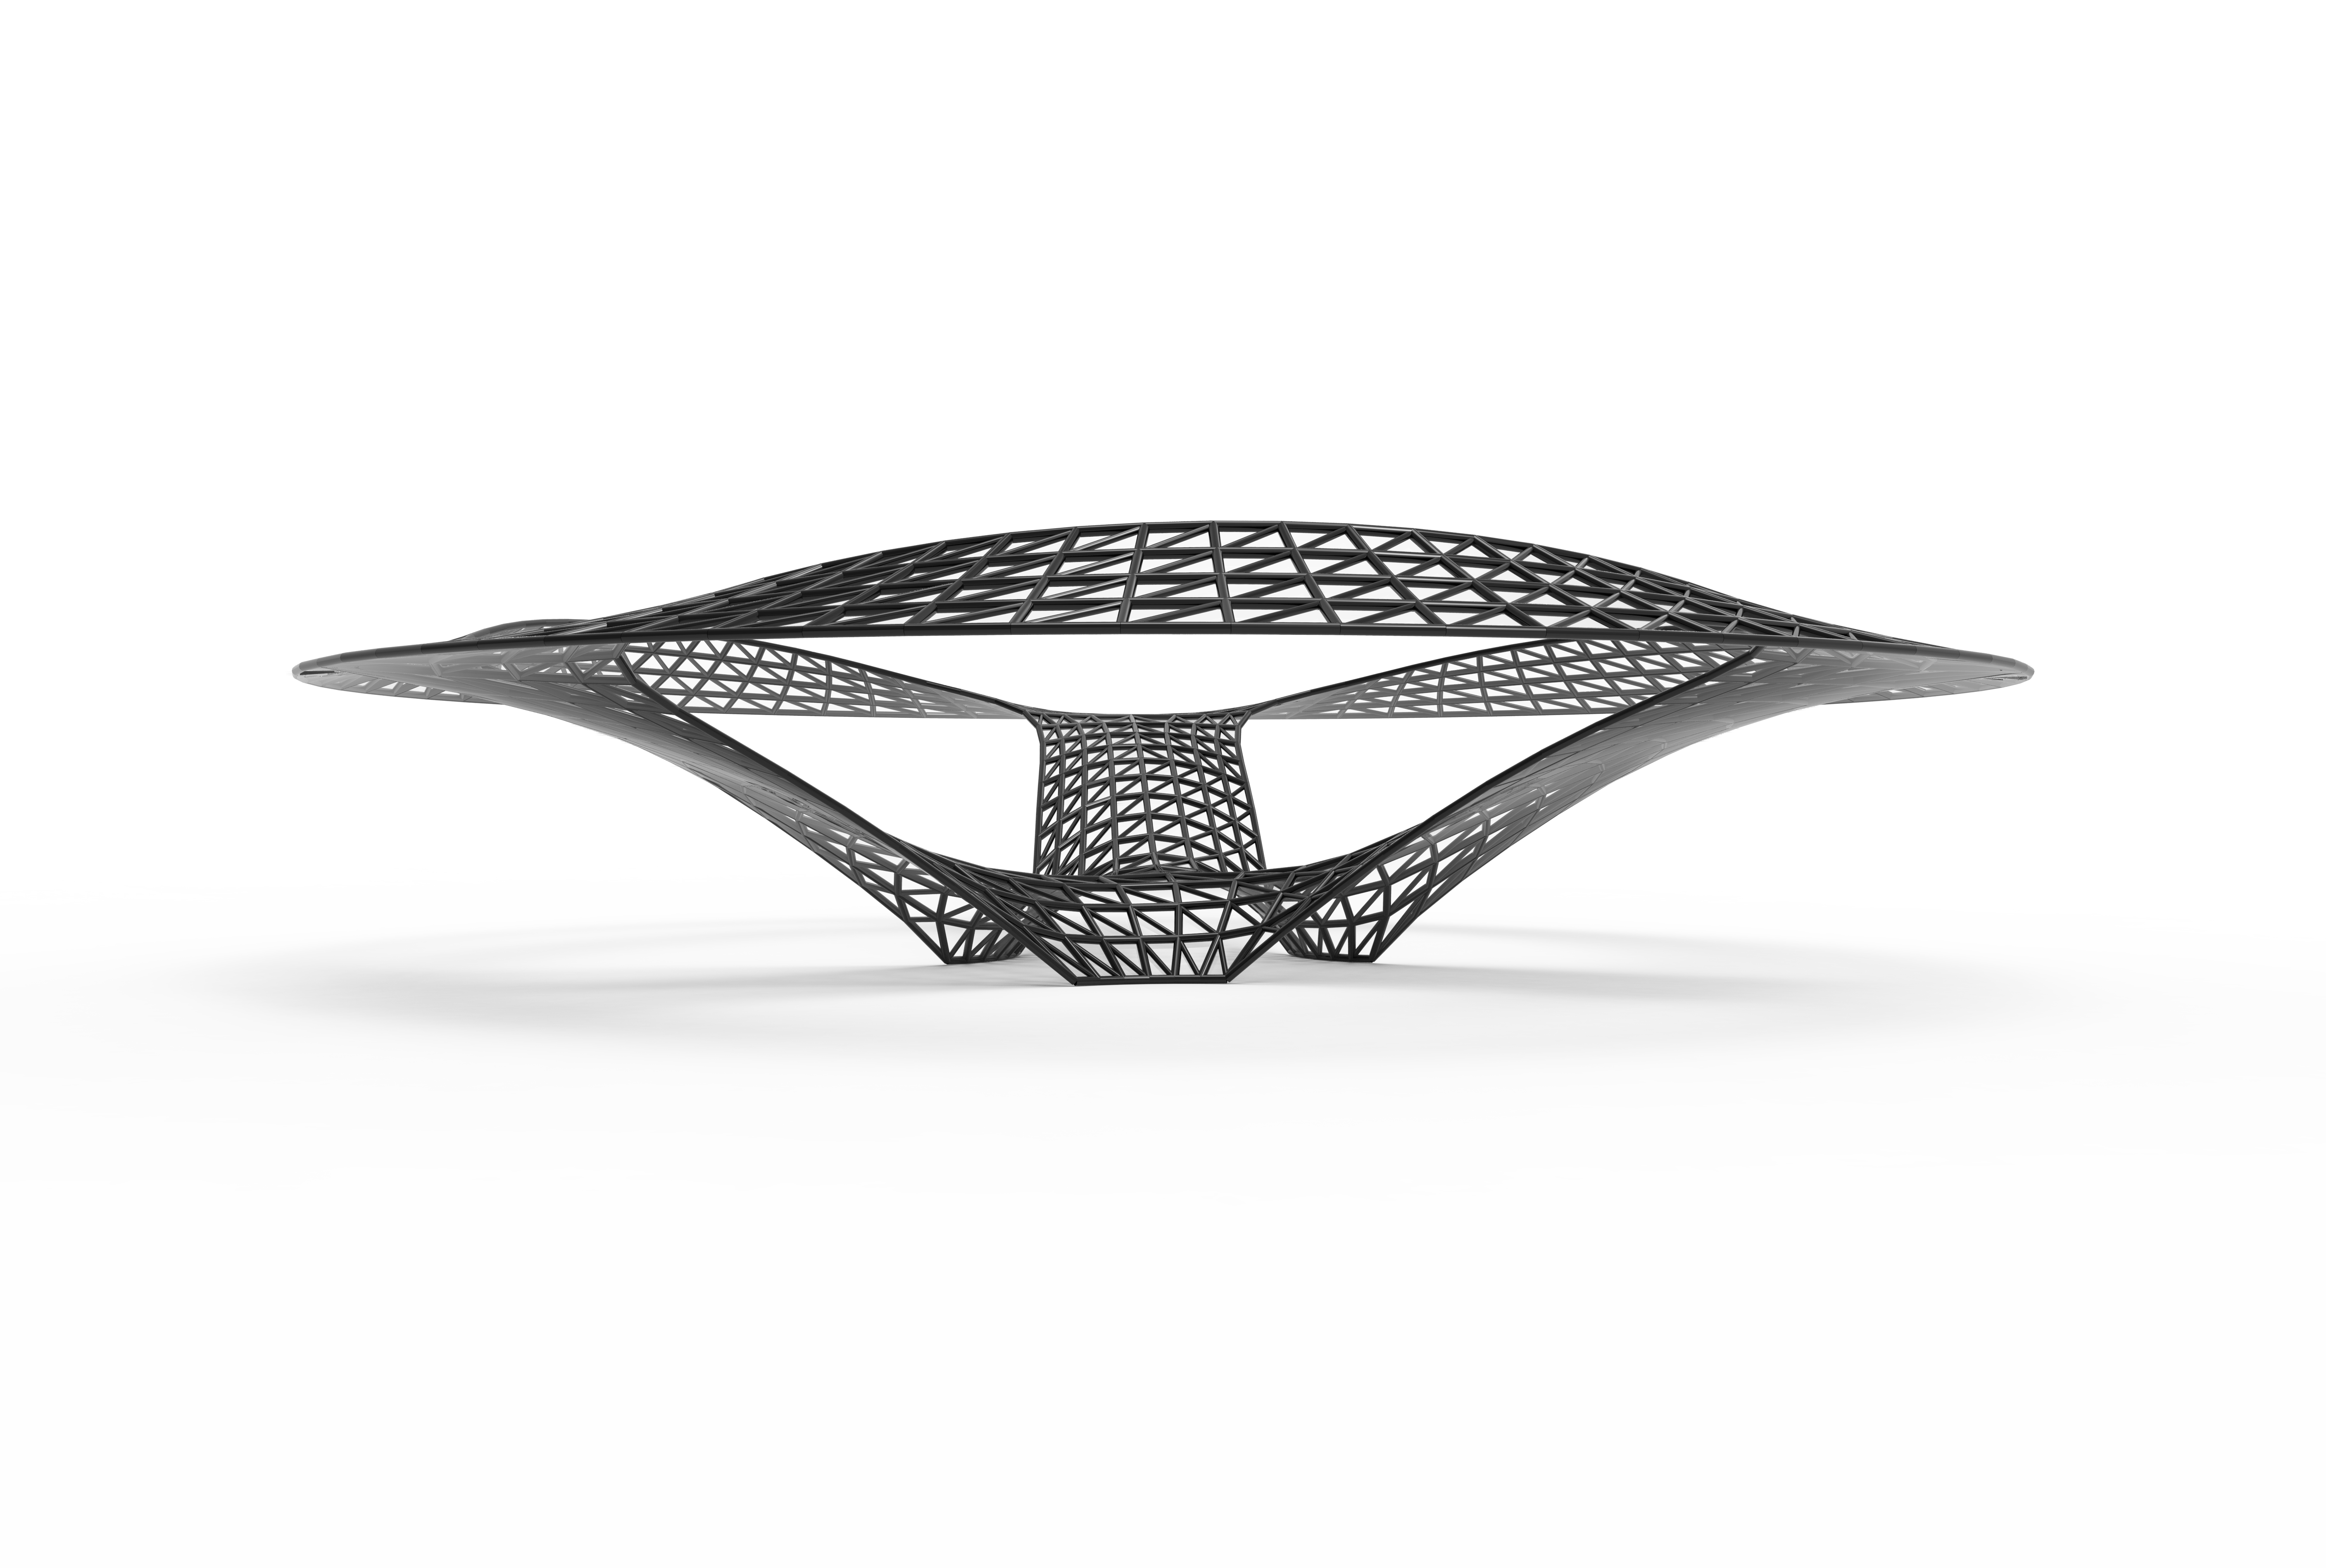 project-main-webinar-form-finding-structural-optimization